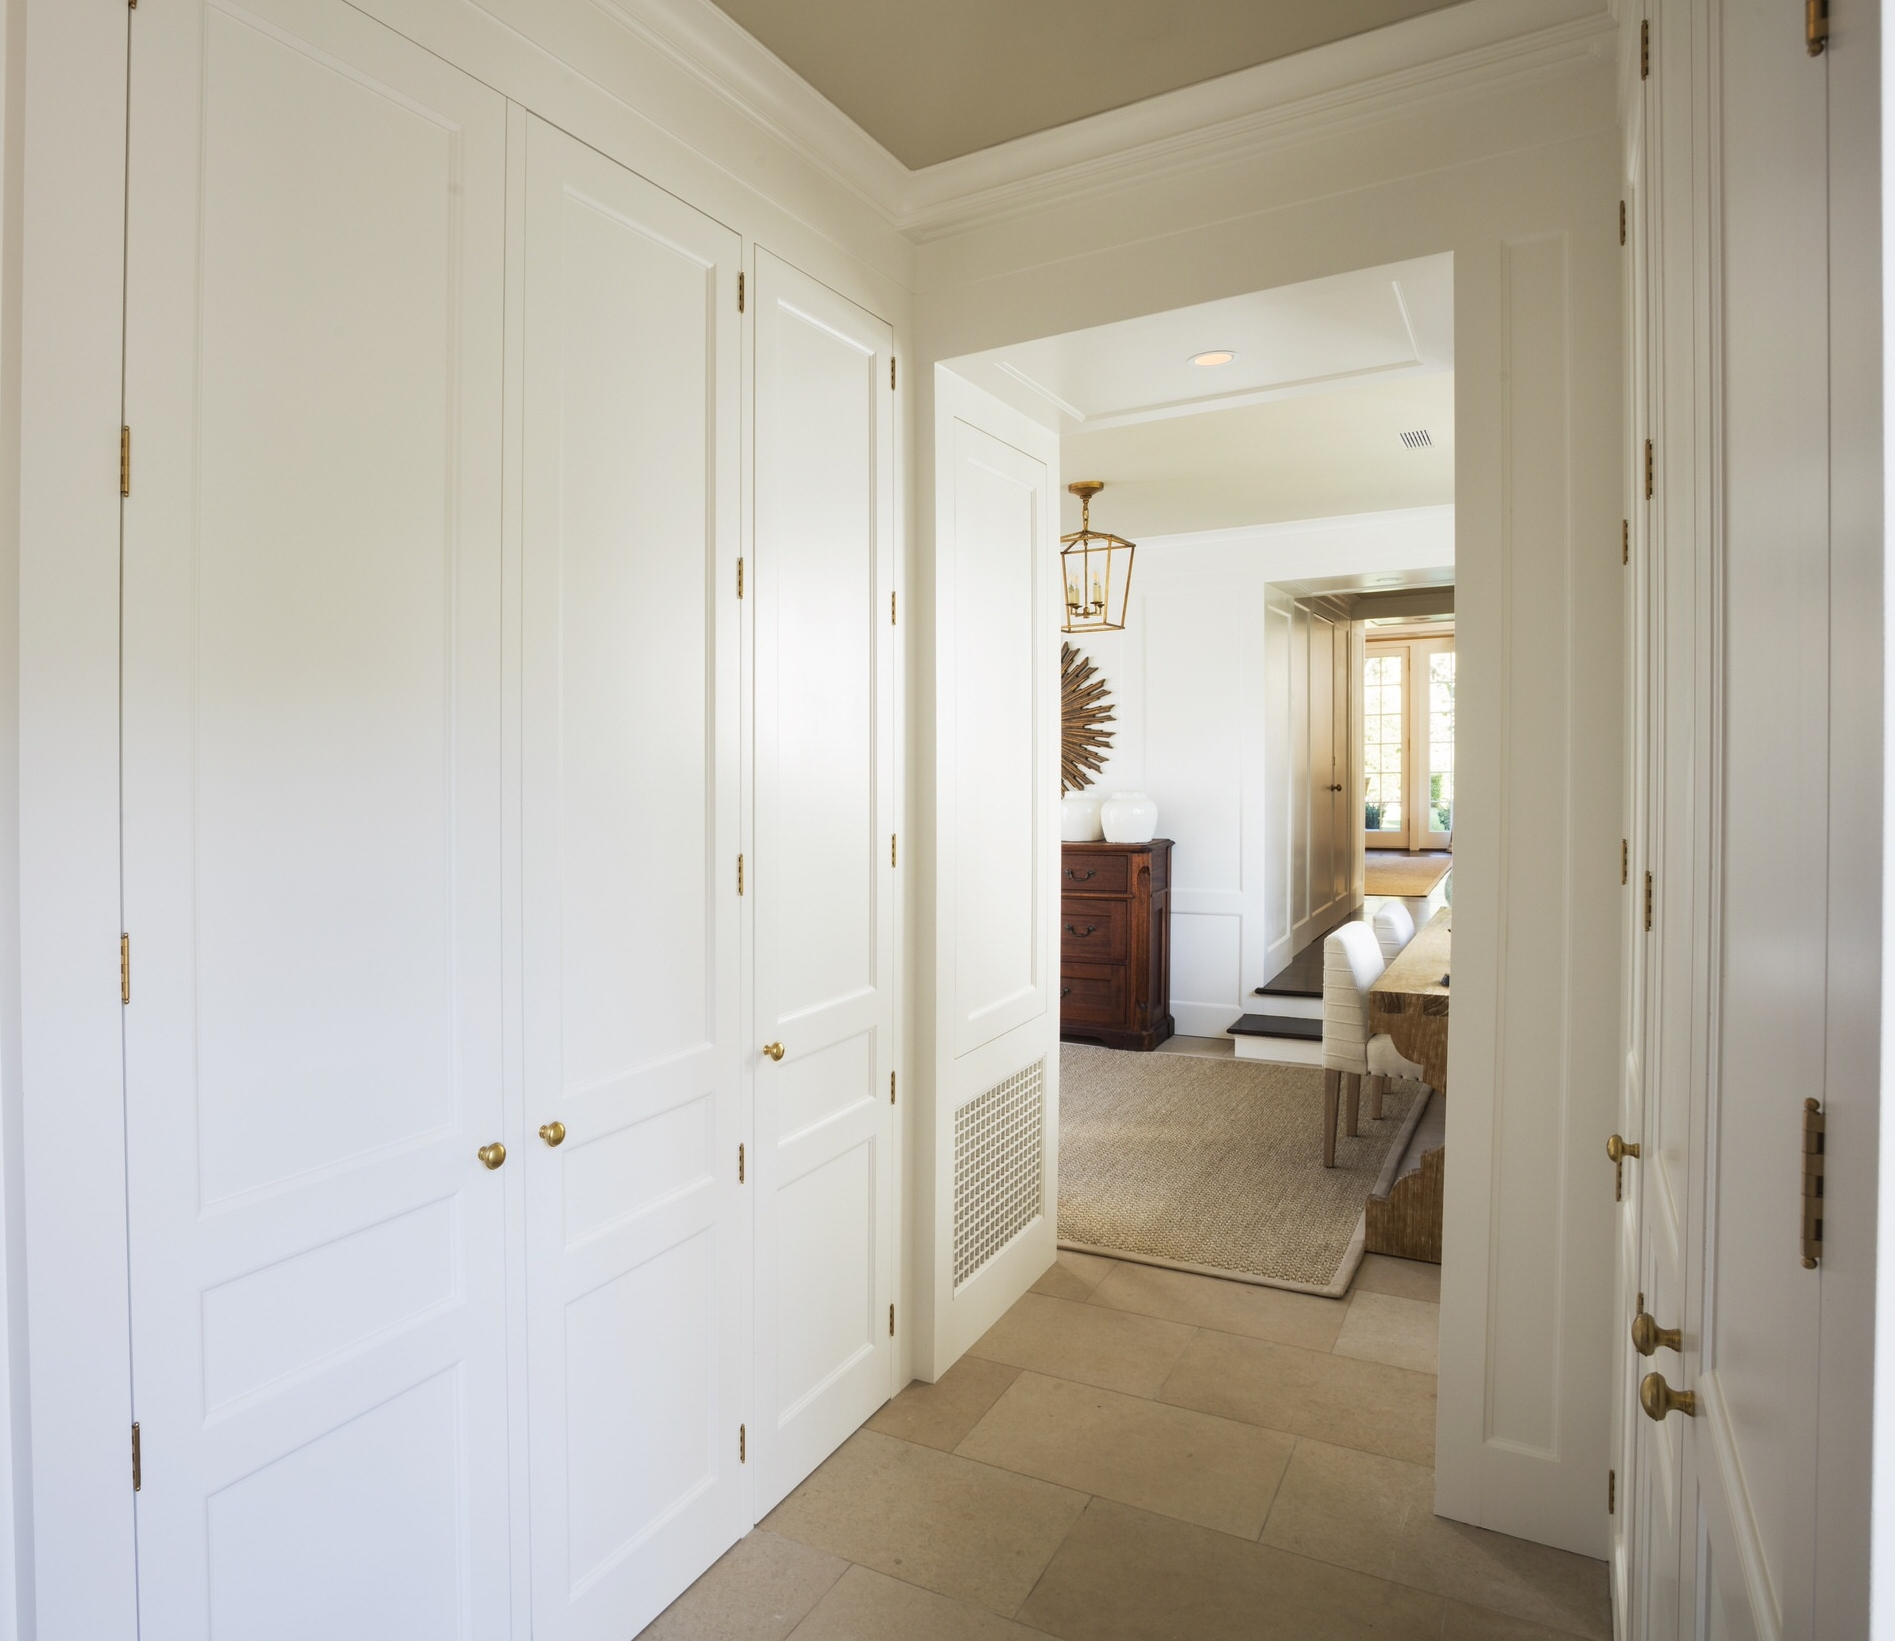 Interior Architecture for a family's entry hall— designed for Hamady Architects